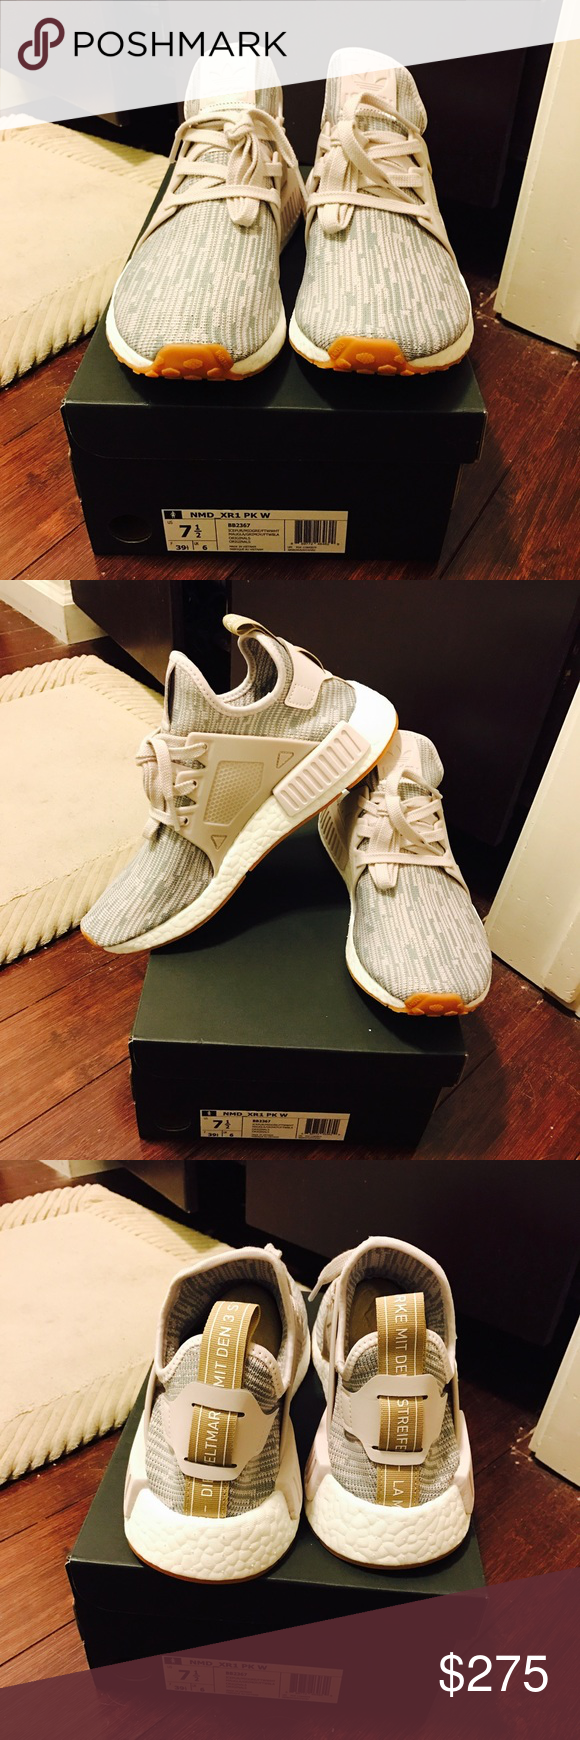 0c324d487ef32 NWT Adidas NMD XR1 primeknit women s sz 7.5 Brand-new with original box Adidas  NMD XR1 Primeknit Shoes in Mid Grey and Ice Purple. SOLD out.